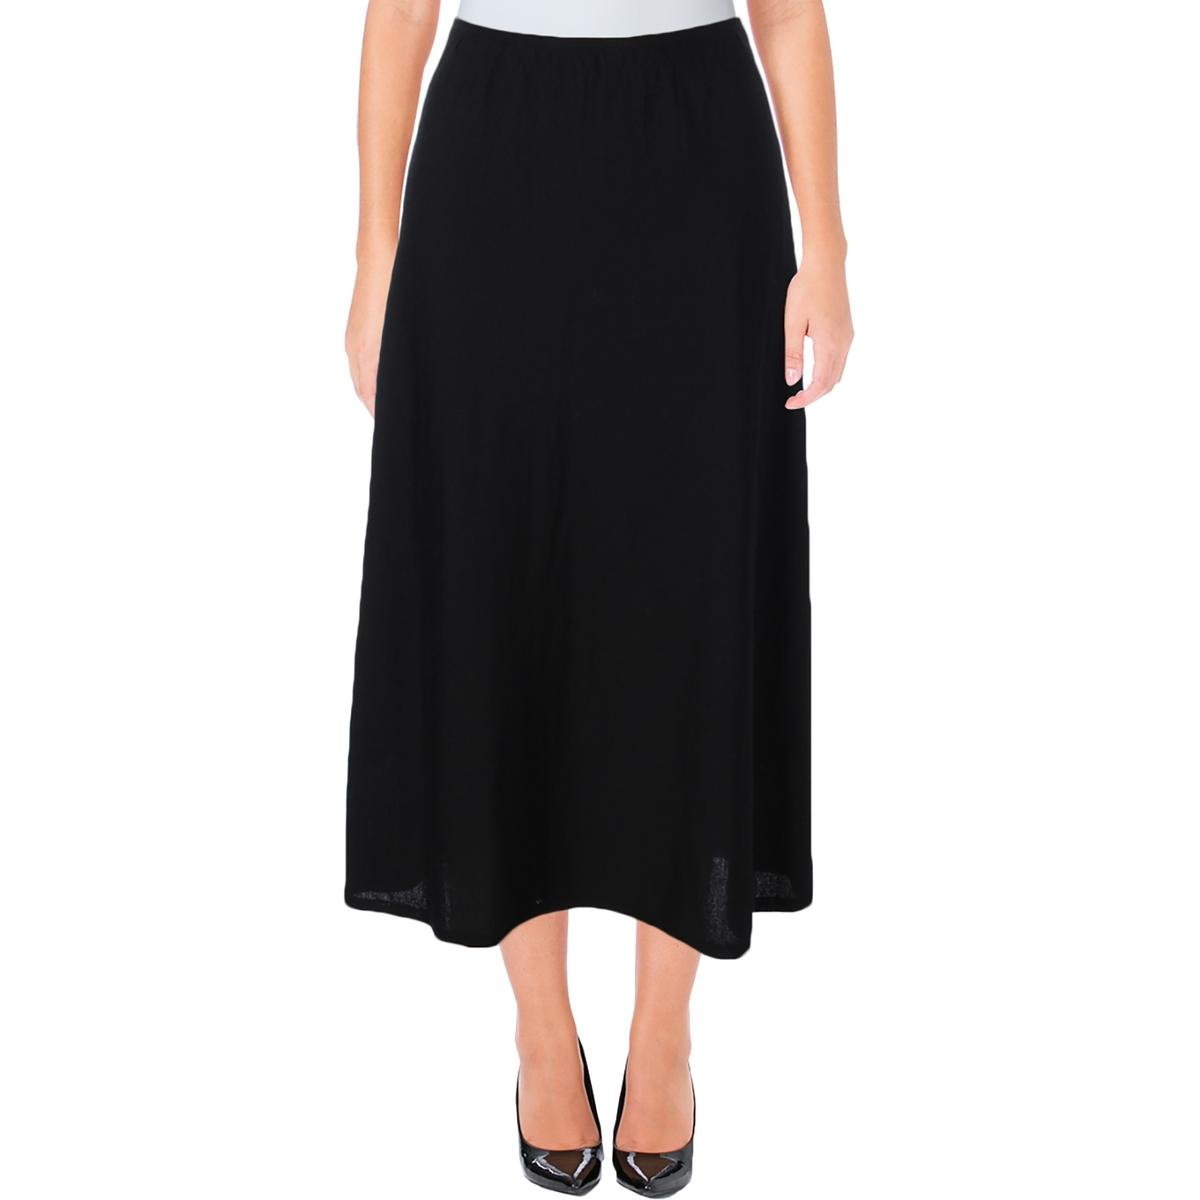 Eileen Fisher Womens Silk Layered A-Line Skirt Black L